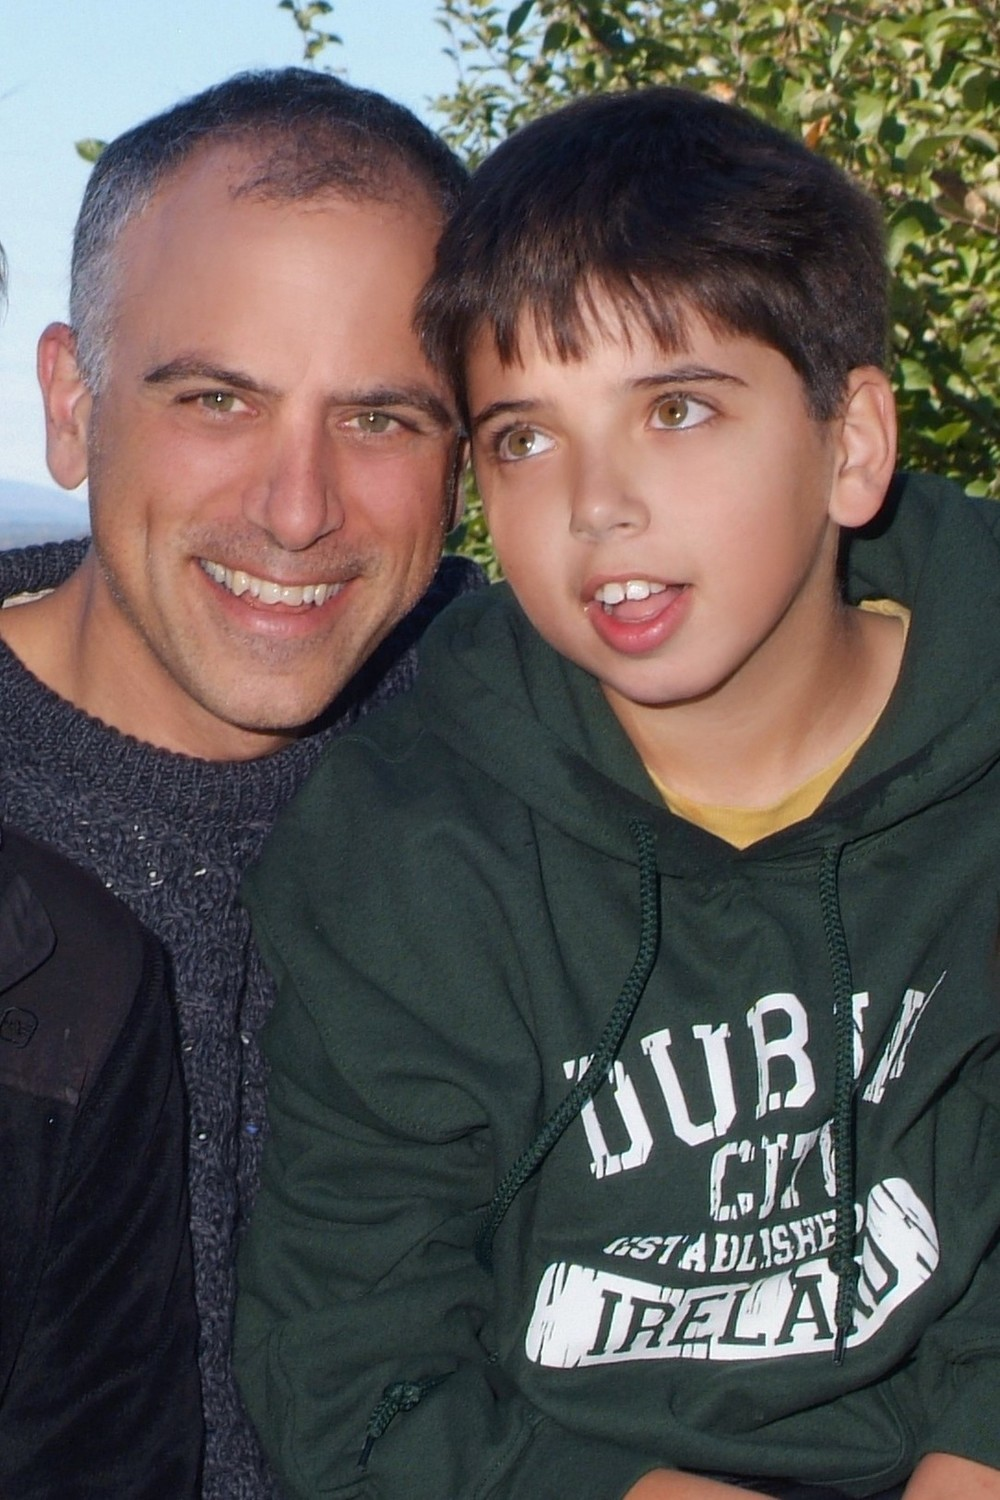 Dan Habib and his son Samuel